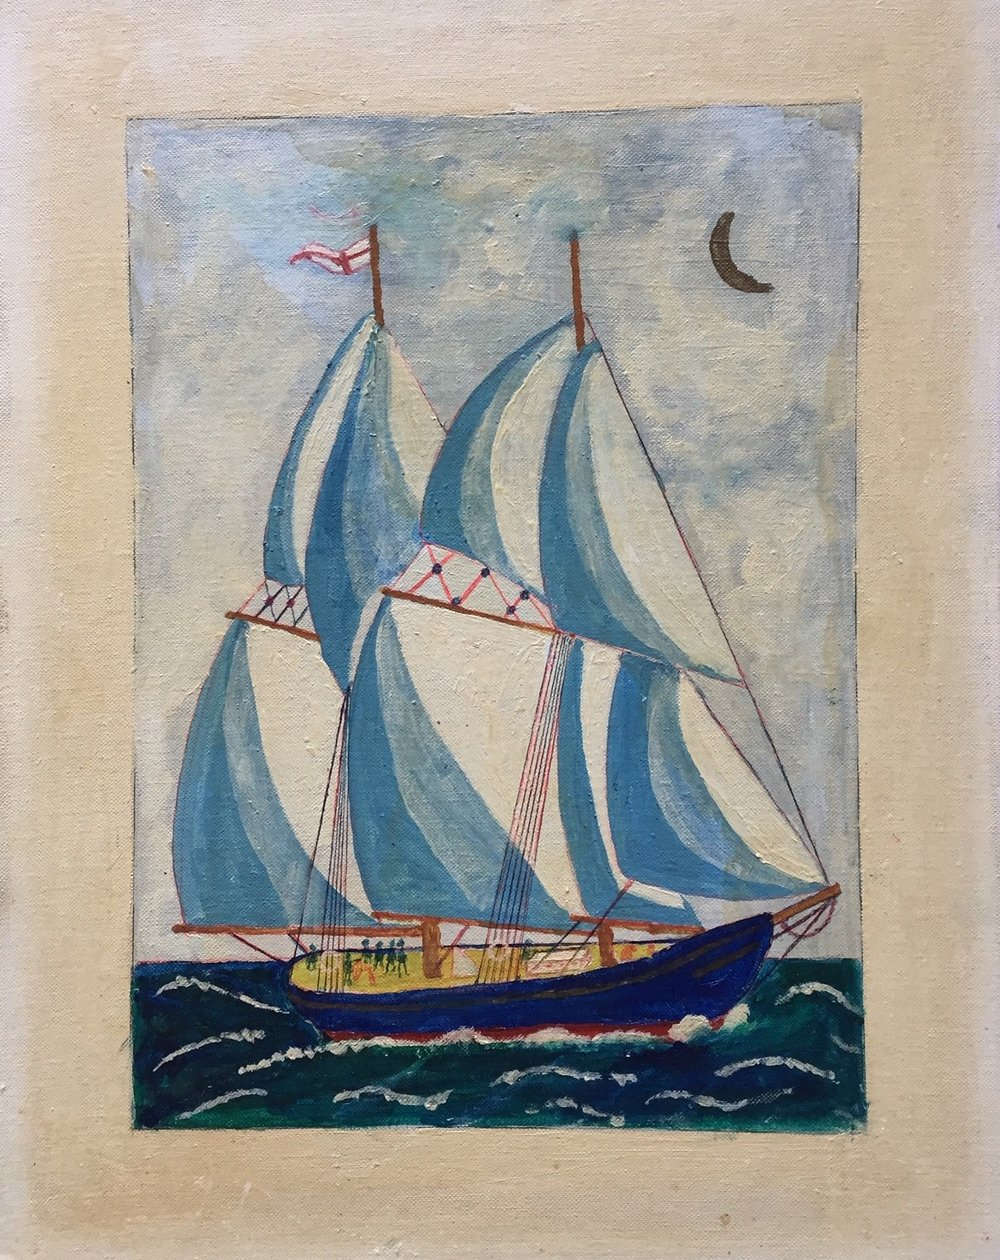 """Alex Falconer 'Bluenose' - Oil on canvas board, 196814"""" x 18""""Signed, titled and datedGood condition with minor discolouration$175.00SOLD"""